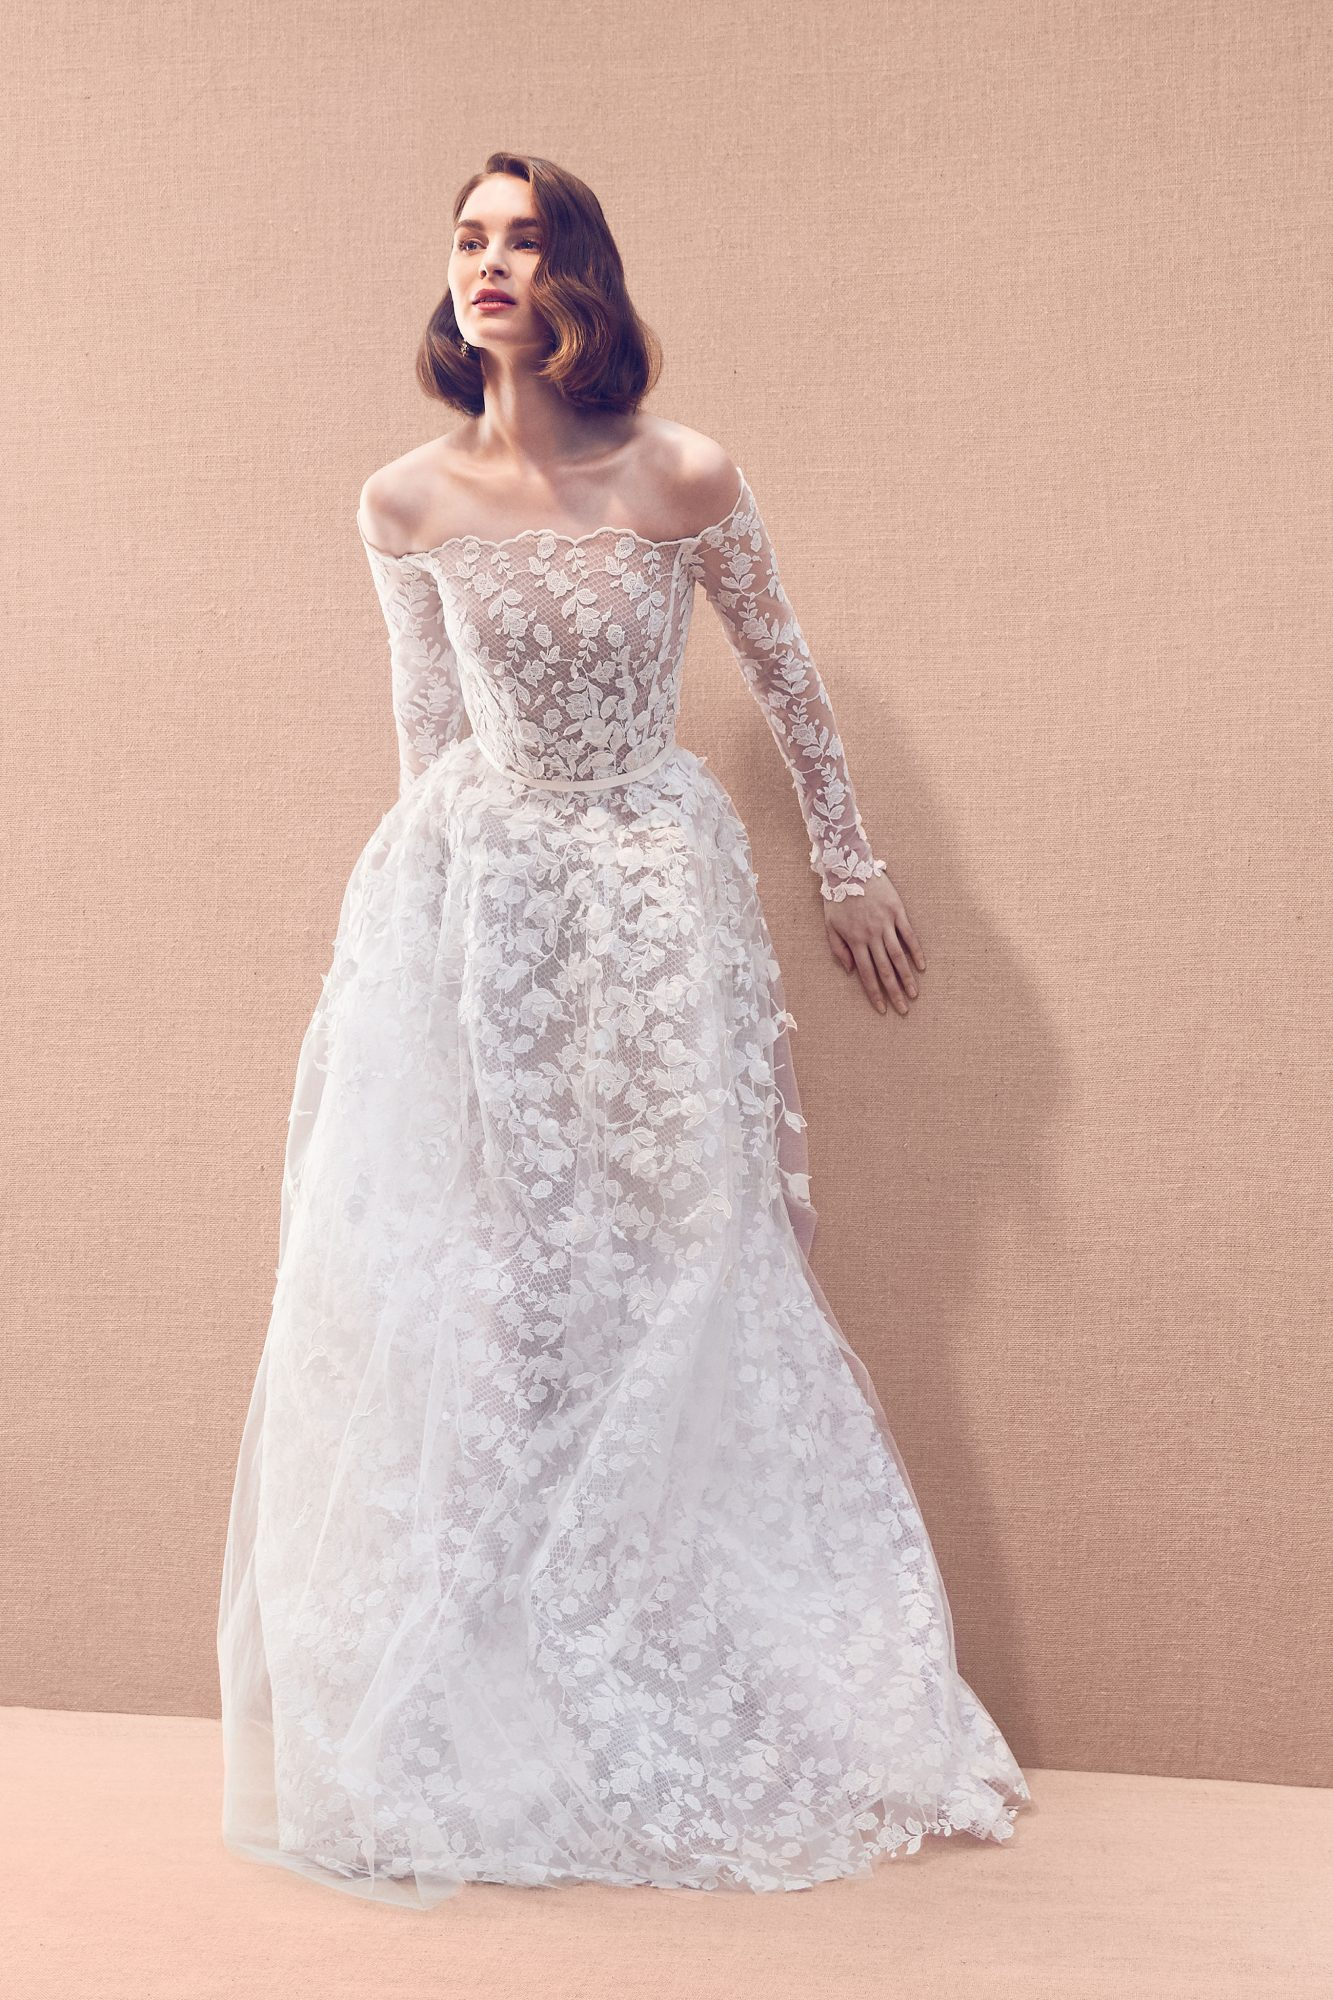 sheer lace scalloped edging off-the-shoulder long sleeve a-line wedding dress Oscar de la Renta Spring 2020